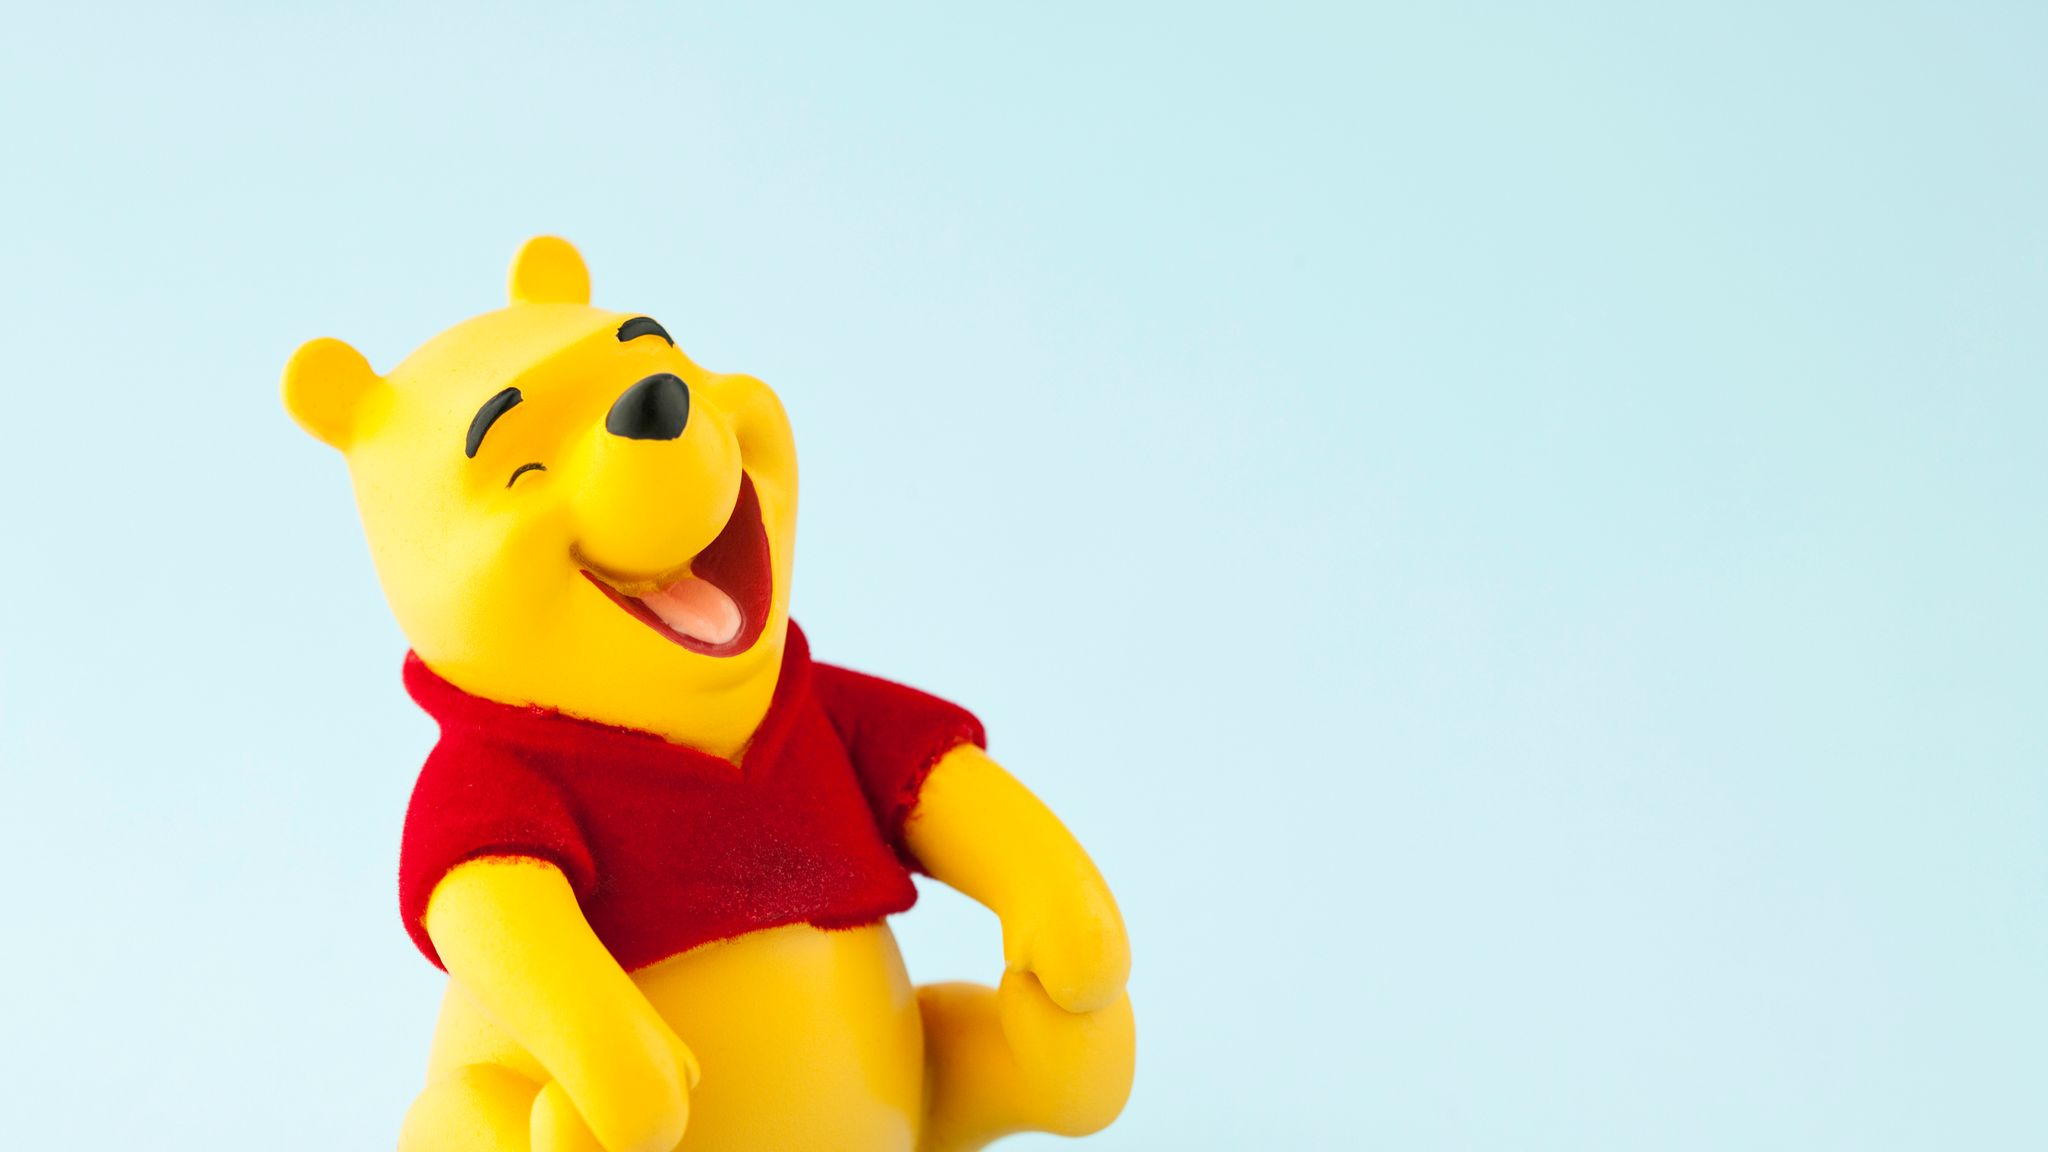 'Oh bother!' - China censors Winnie the Pooh